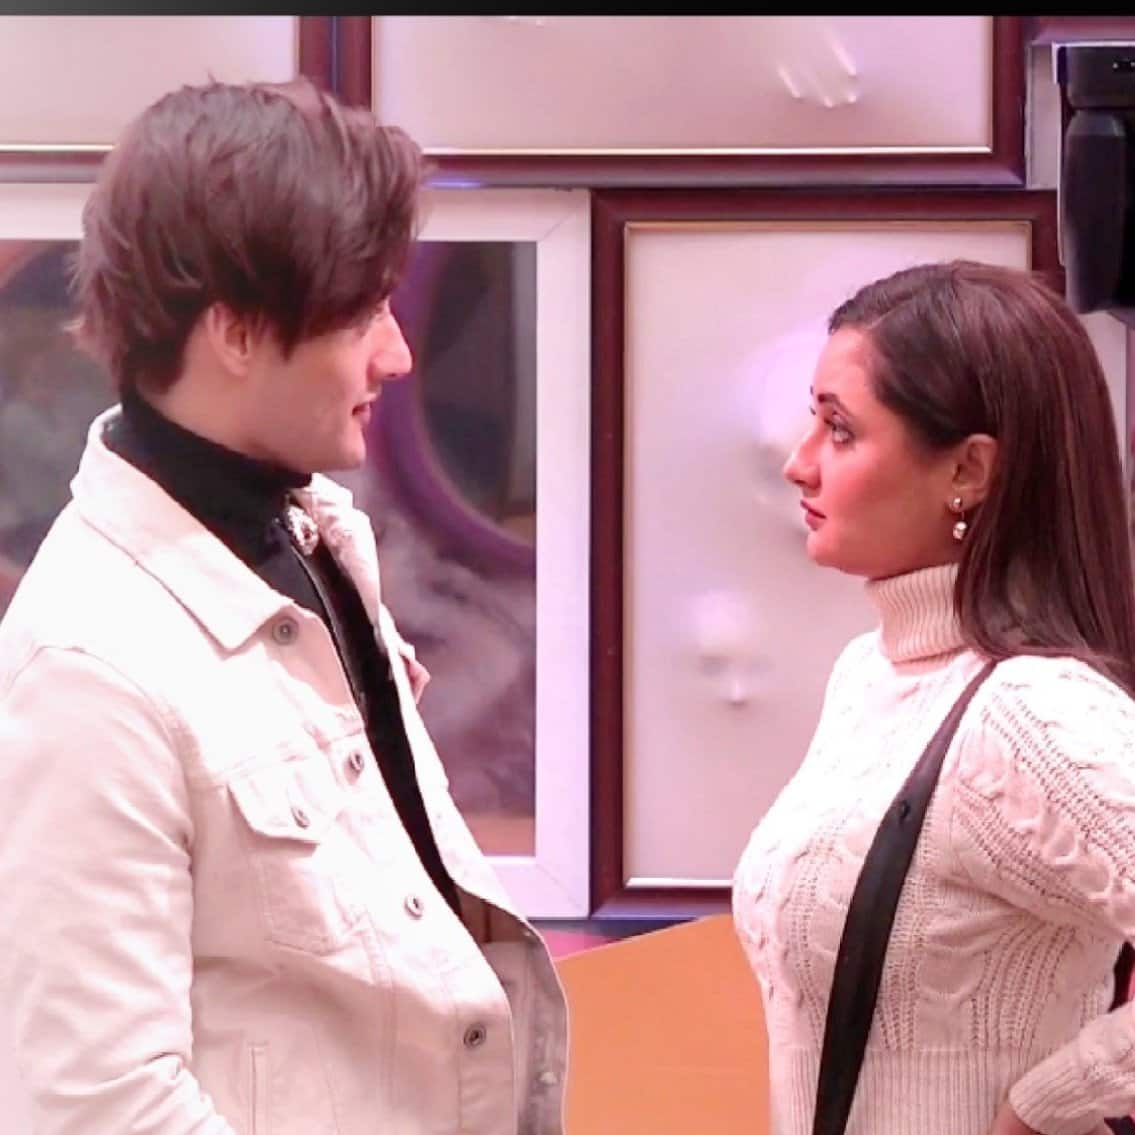 Bigg Boss 13: Rashami Talks About Her Equation With Sidharth; Says 'We Have Become Comfortable With Each Other'